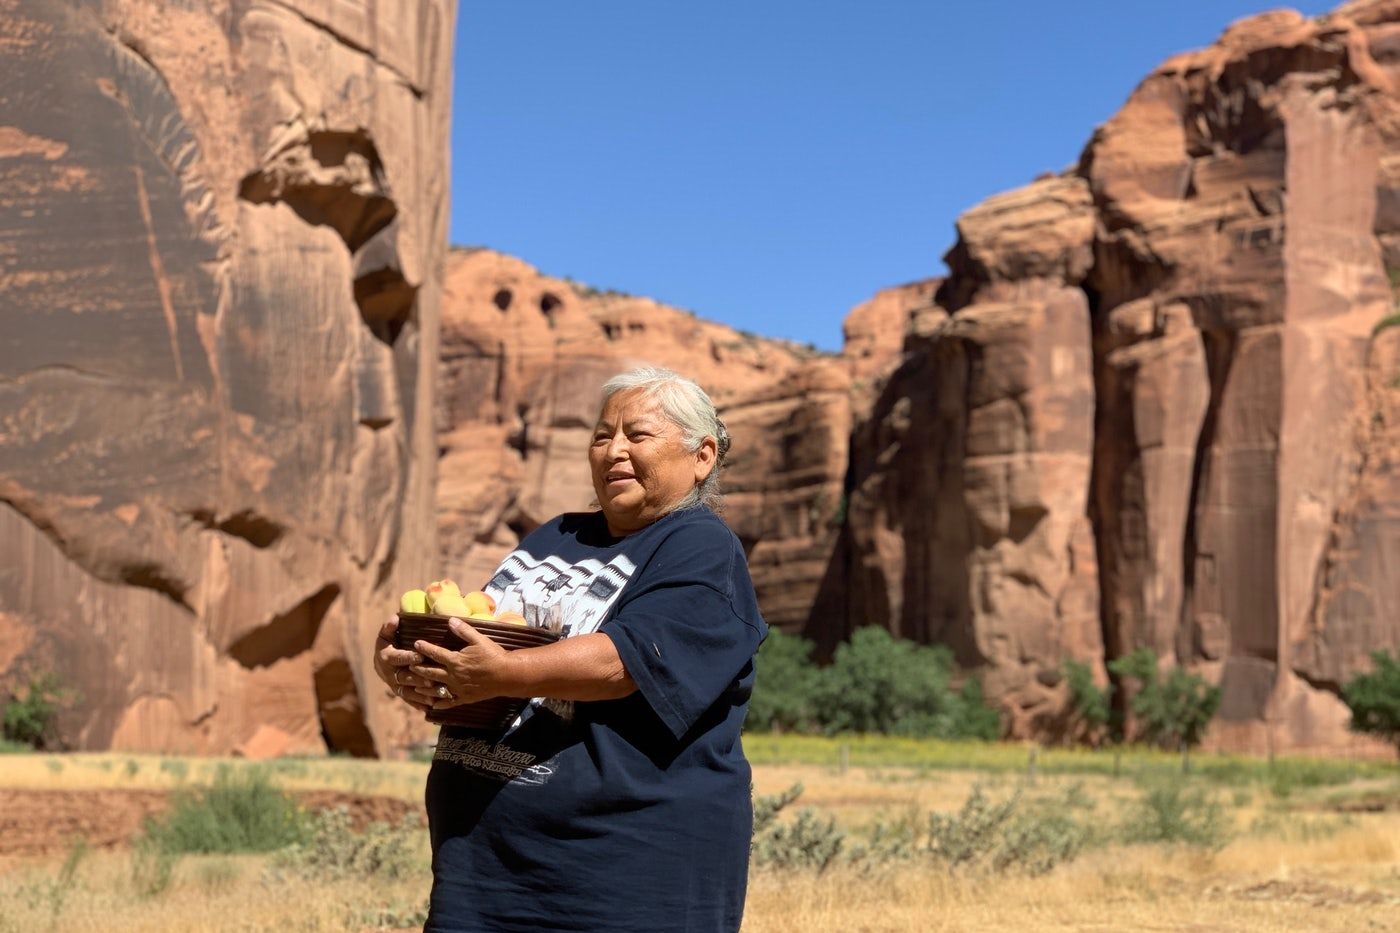 Sylvia Watchman holds a basket of peaches in Canyon de Chelly.